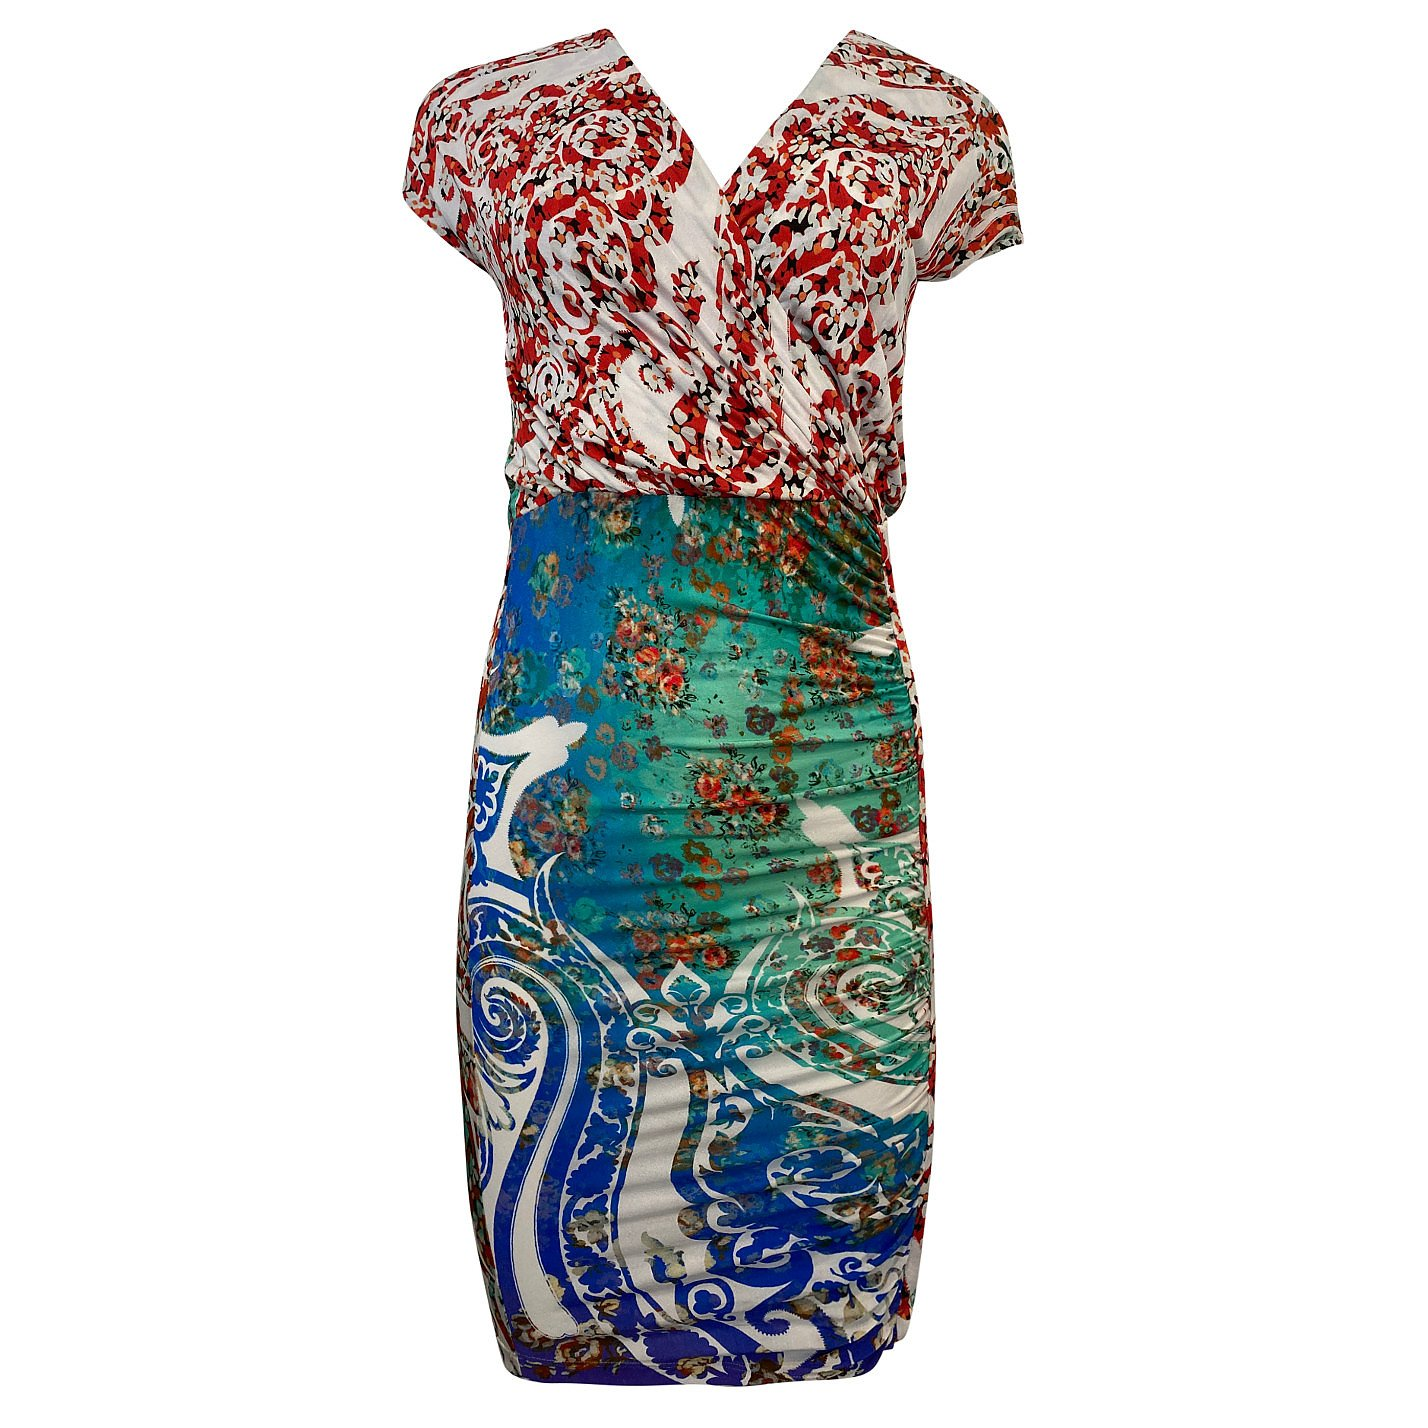 ETRO Mixed Print Ruched Dress